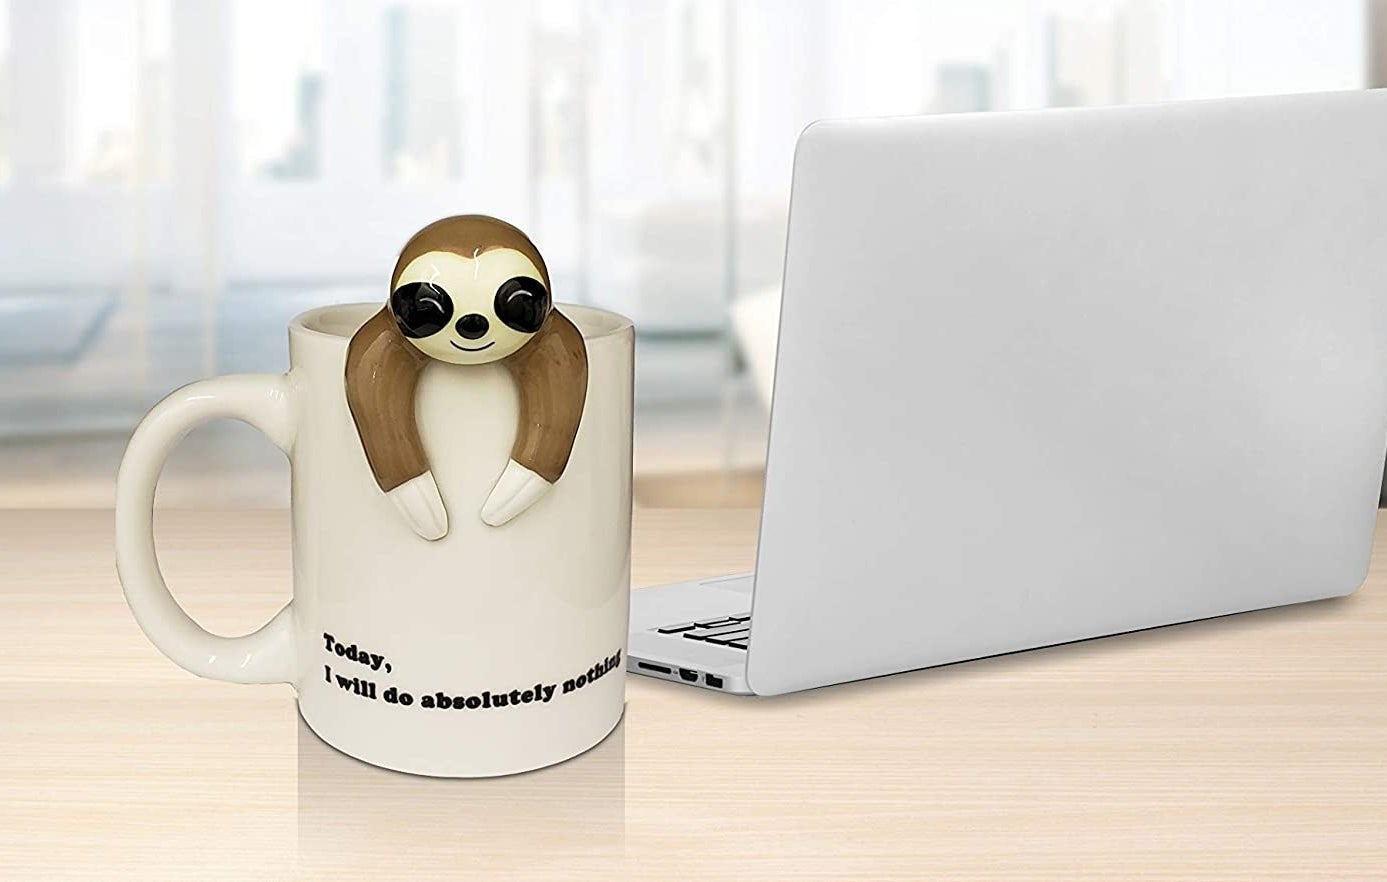 Coffee mug with sloth-shaped figure attached on the edge